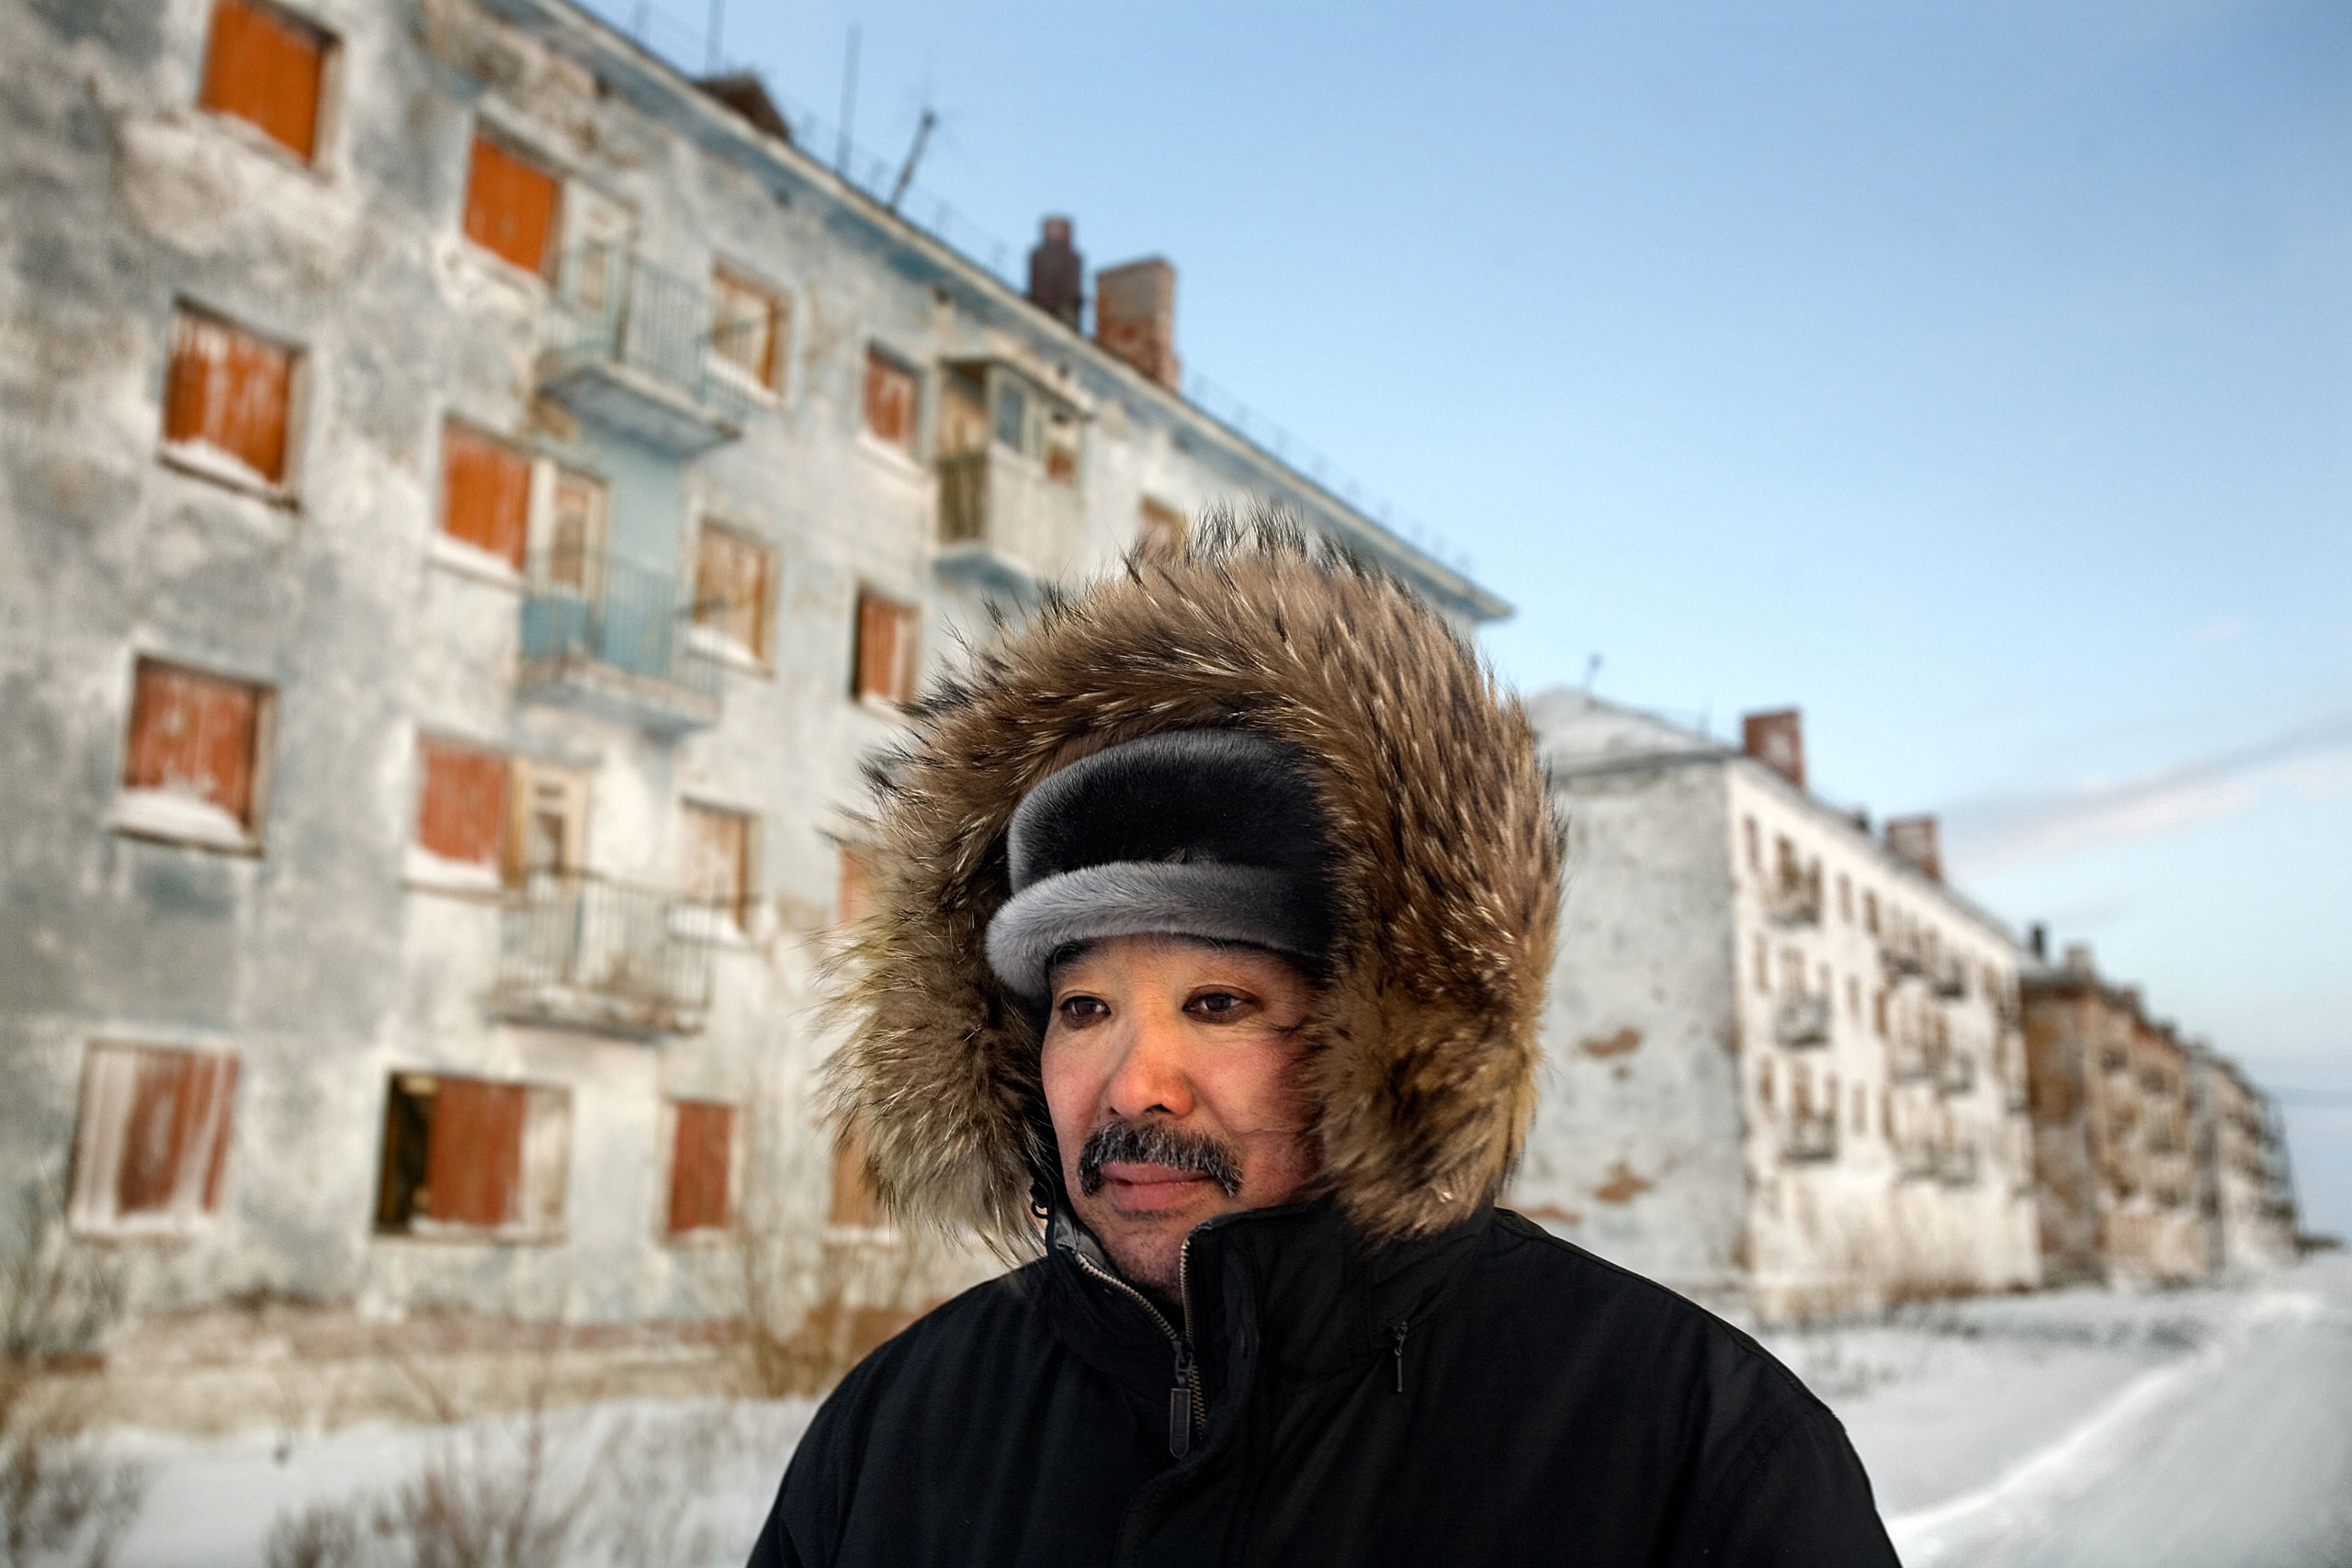 Karp Belgayev, a coal miner, walks through Yorshor, an abandoned village near Vorkuta where he is among the last ten inhabitants. Miners say that after ten years working underground and poor washing, it is impossible to remove black rings from around the eyes, January 2009.